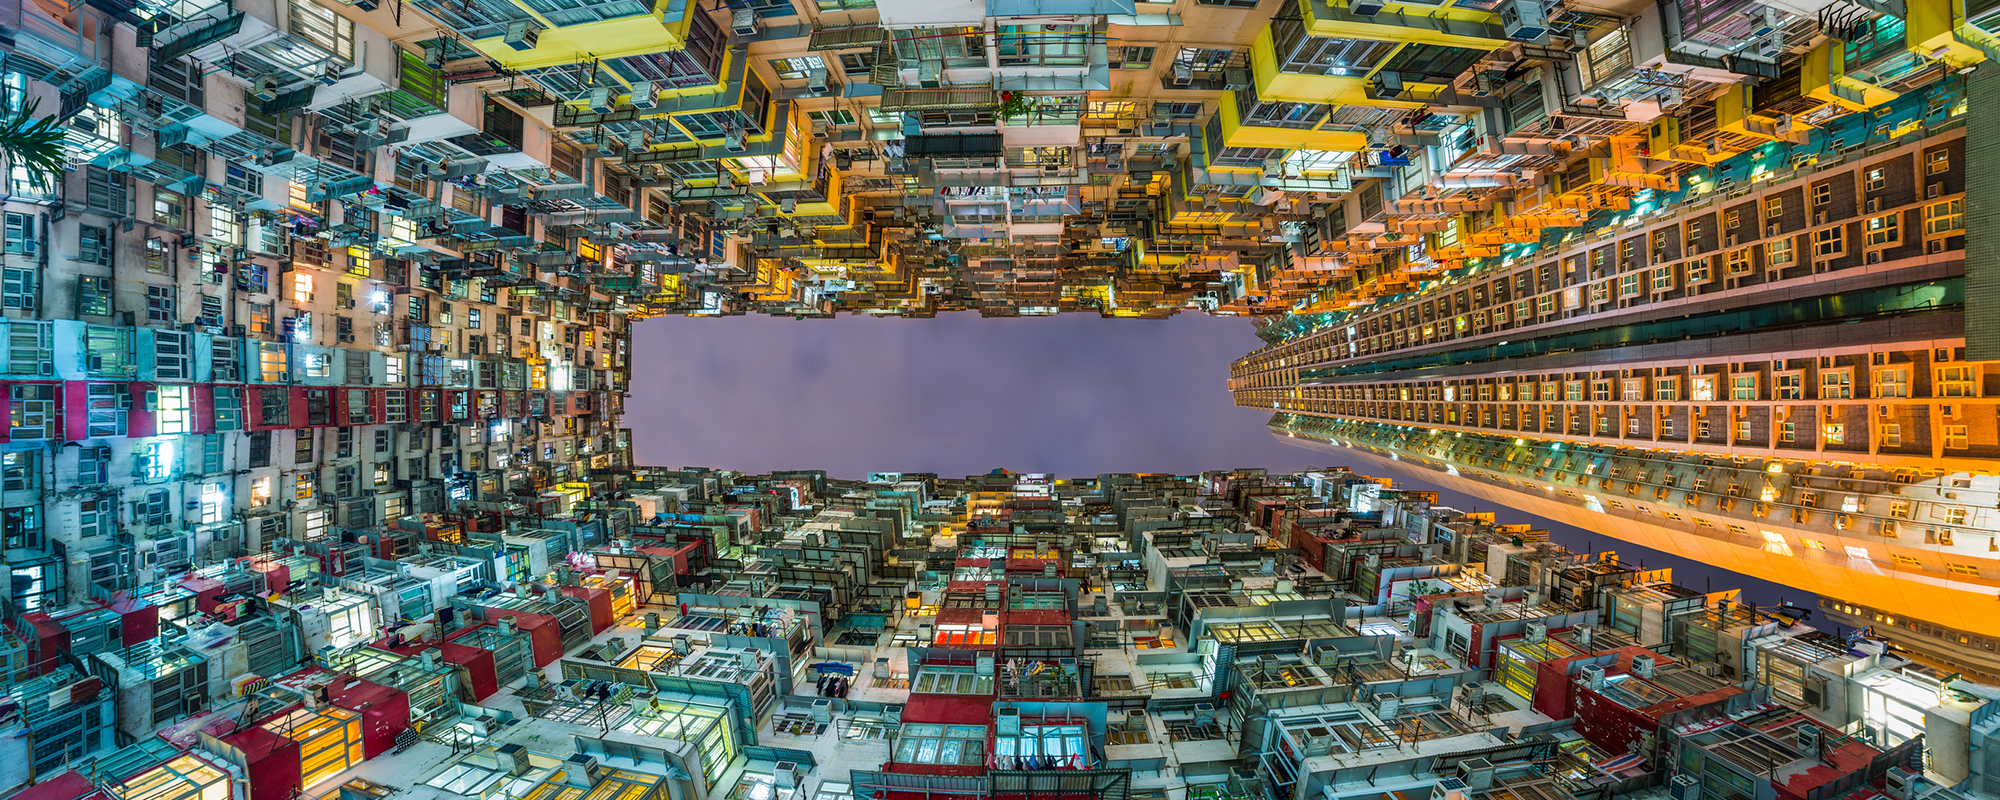 Cityscape, Getty Images